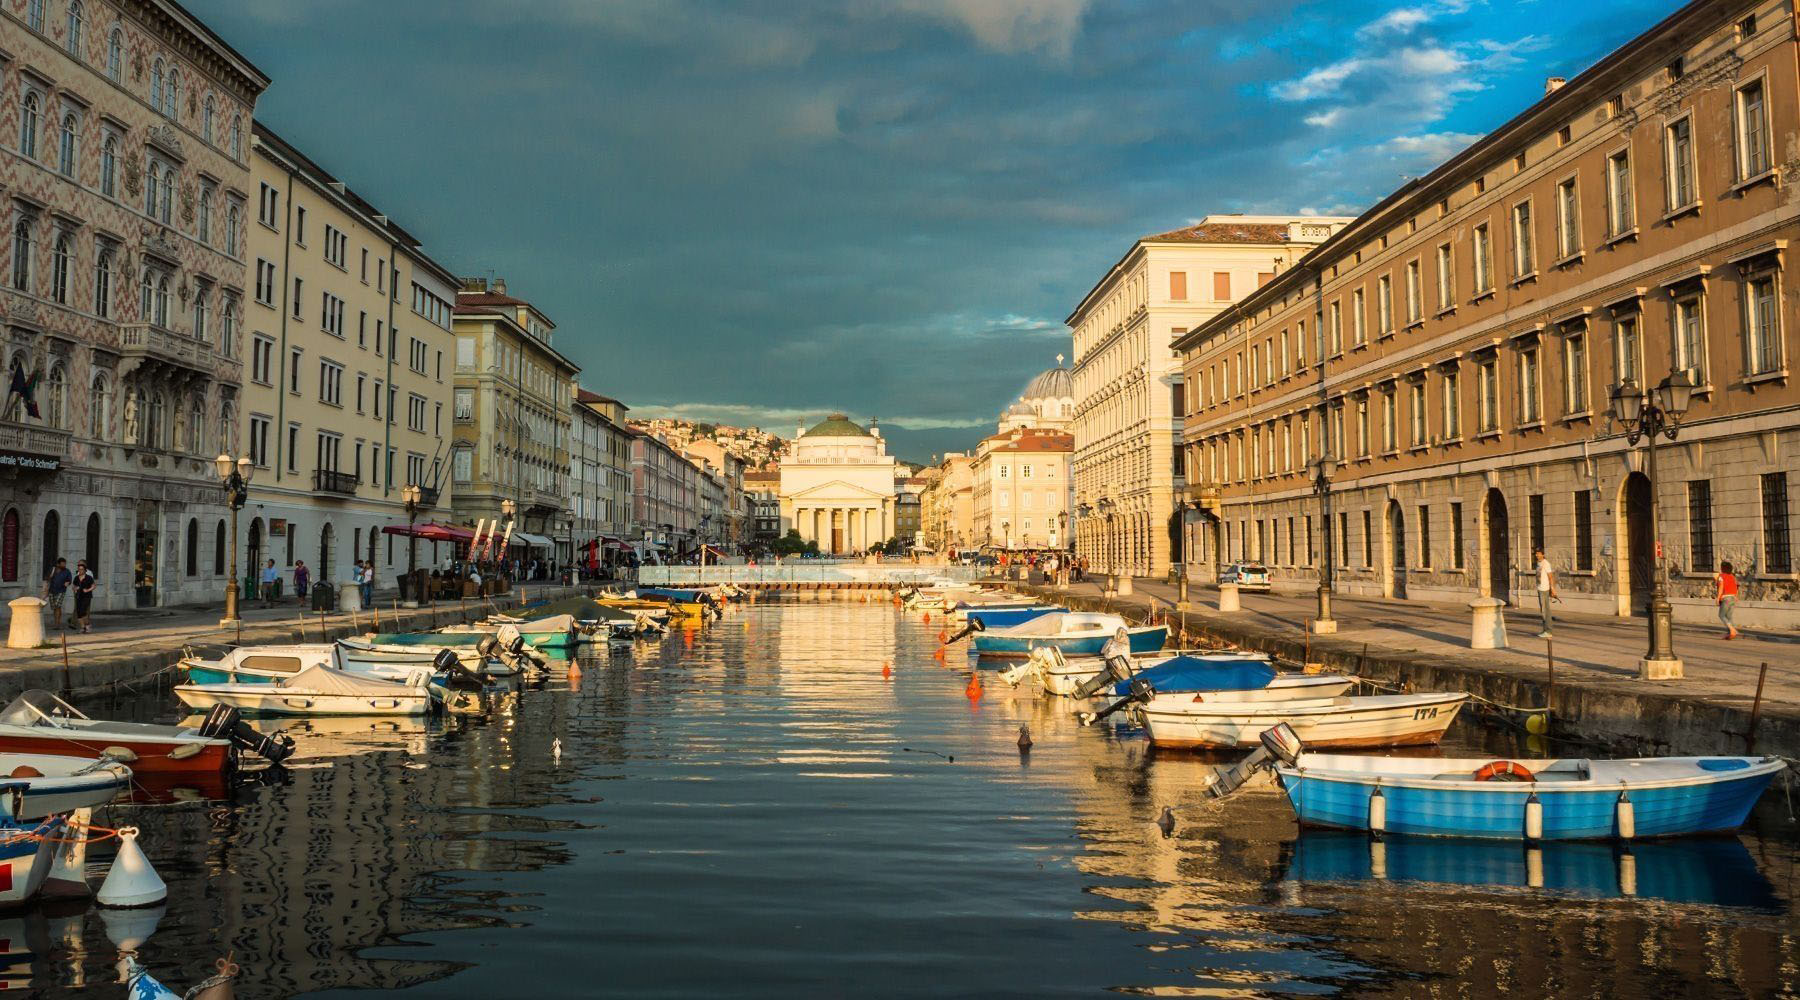 The canals of Trieste, Italy